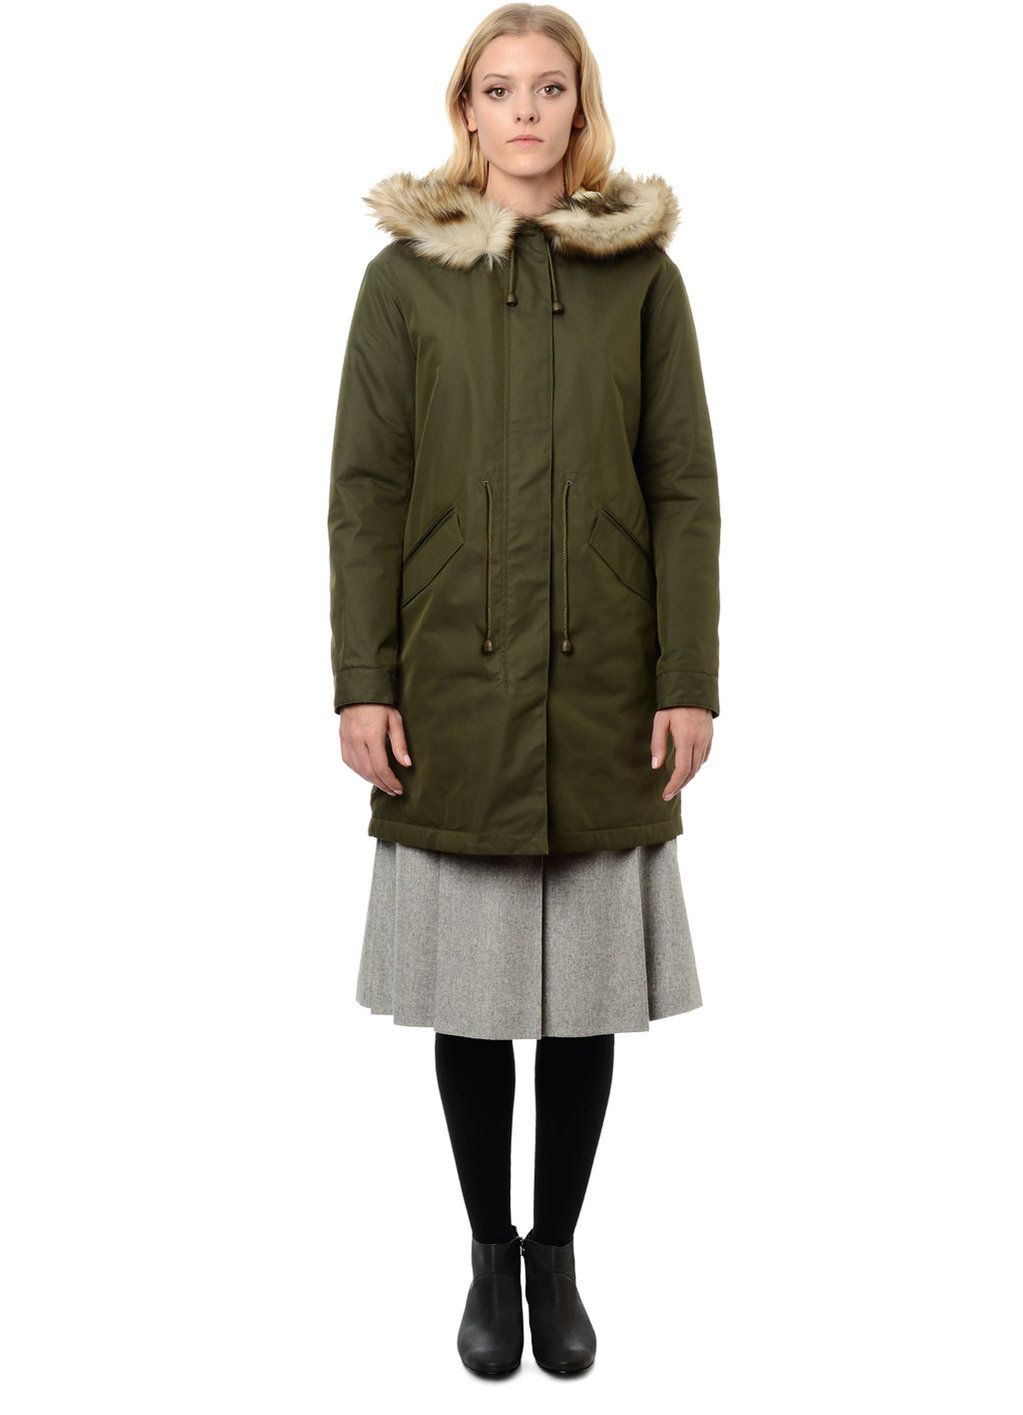 A.P.C. NEW MOD PARKA | women's coats | Pinterest | Coats